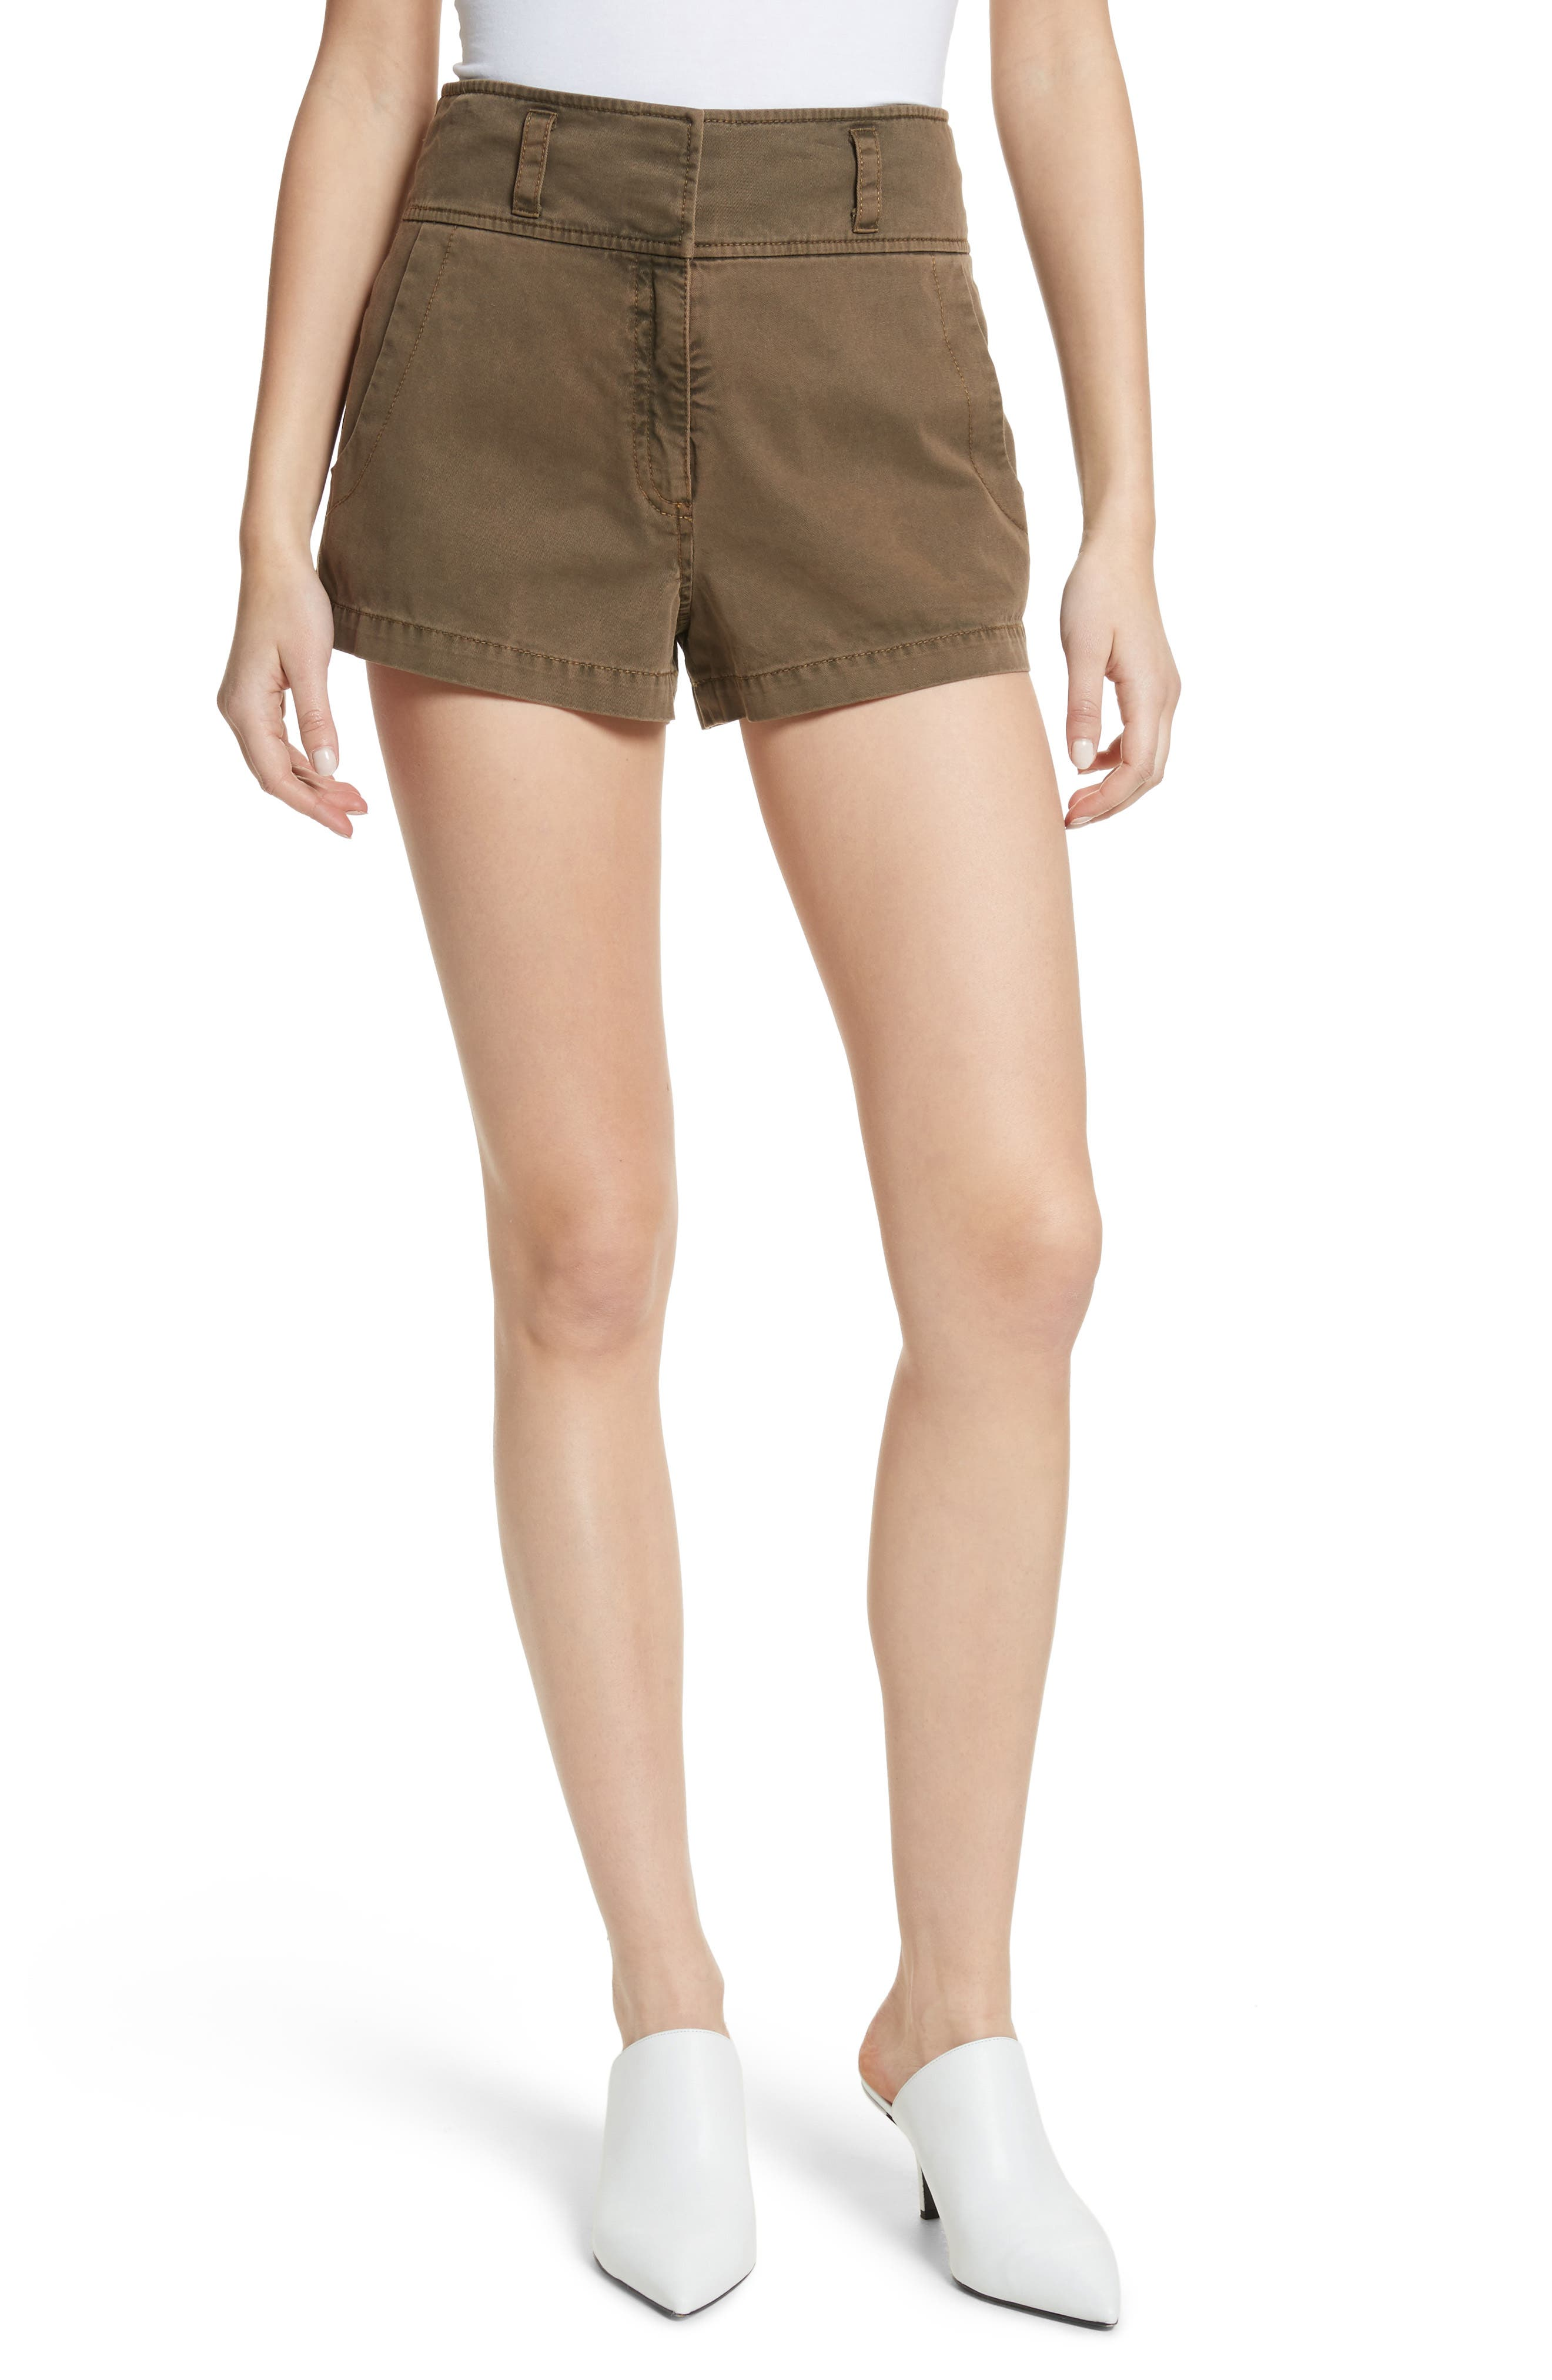 Tour Les Jour Shiloh Shorts,                             Main thumbnail 1, color,                             Olive/ Amber